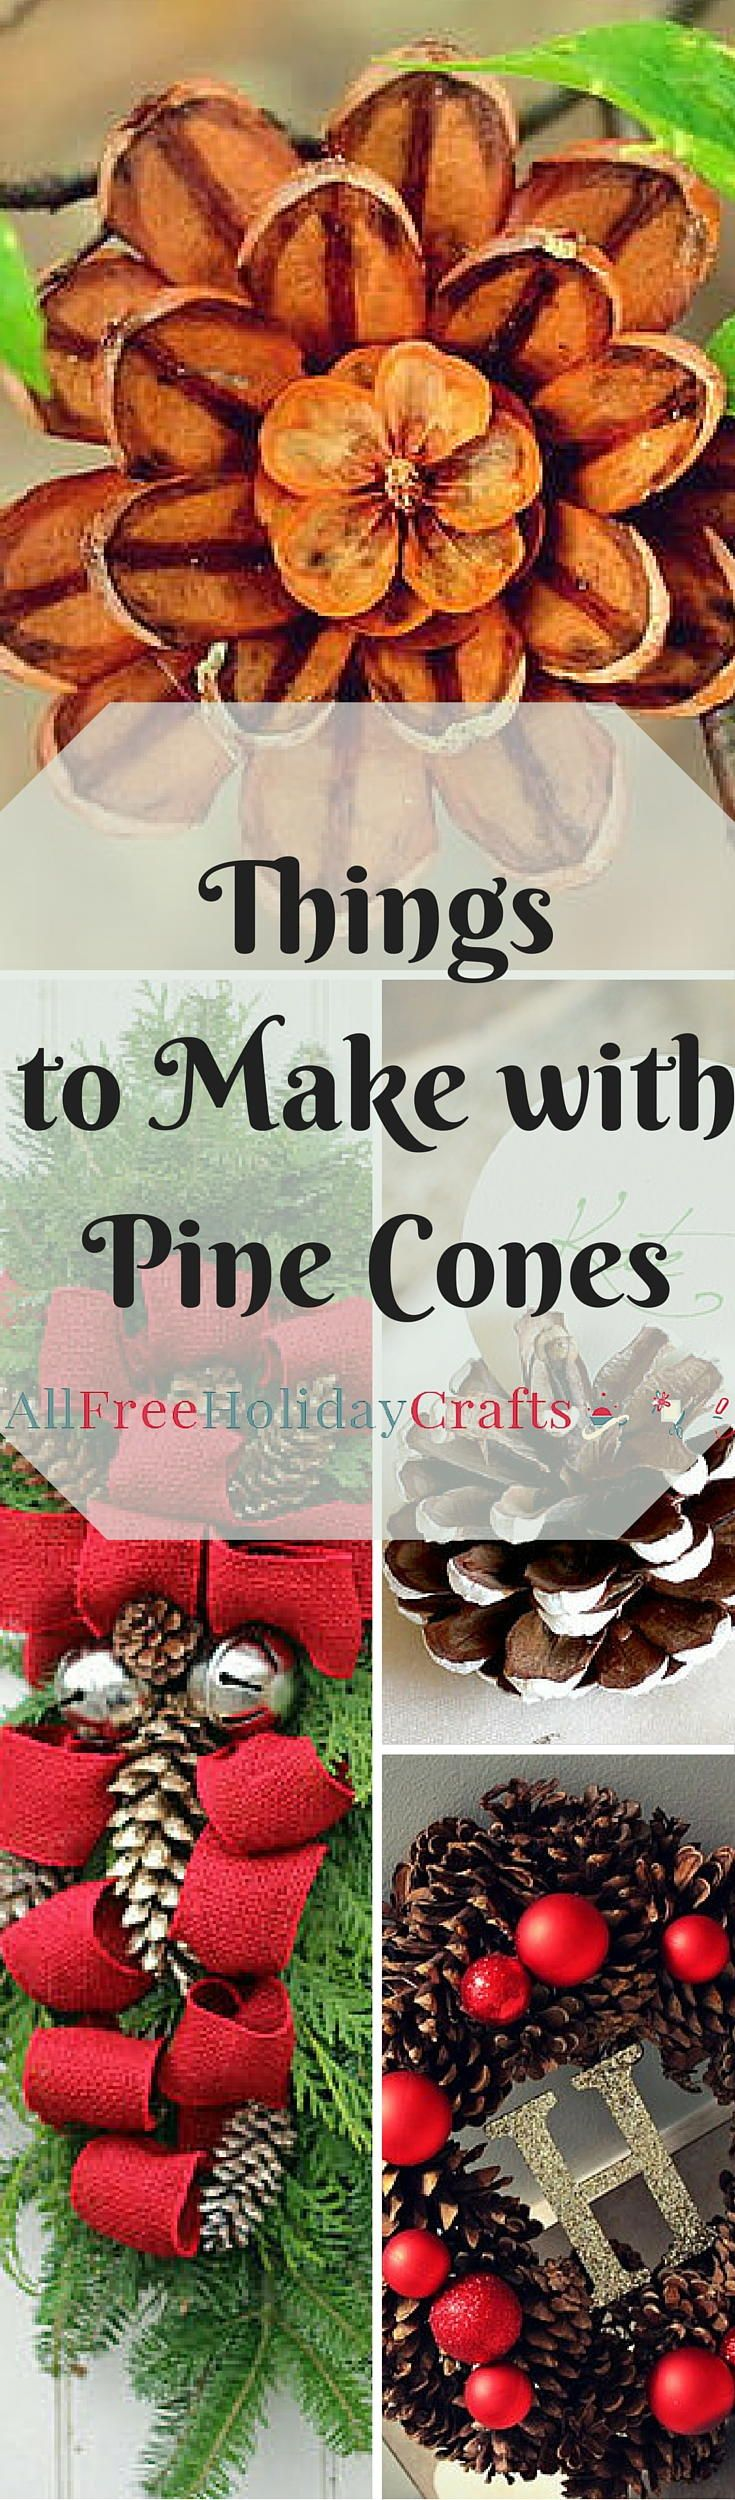 Pine Cone Crafts: 14 Things to Make With Pine Cones | AllFreeHolidayCrafts.com